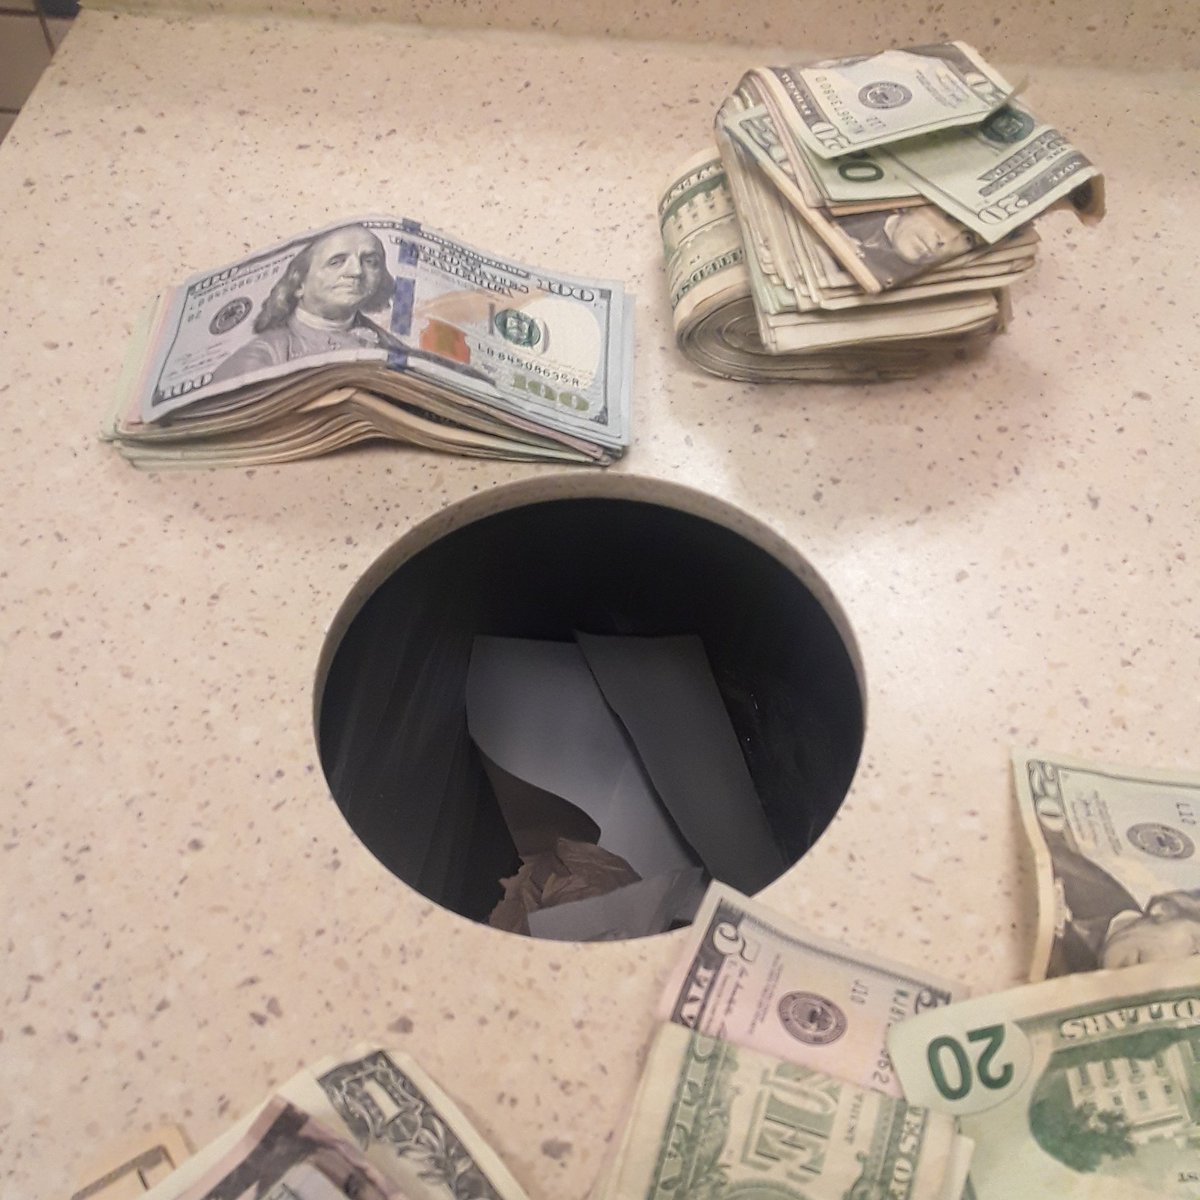 I dont care where im at i count money anywher i go im in a restaurant bathroom counting money richforlife